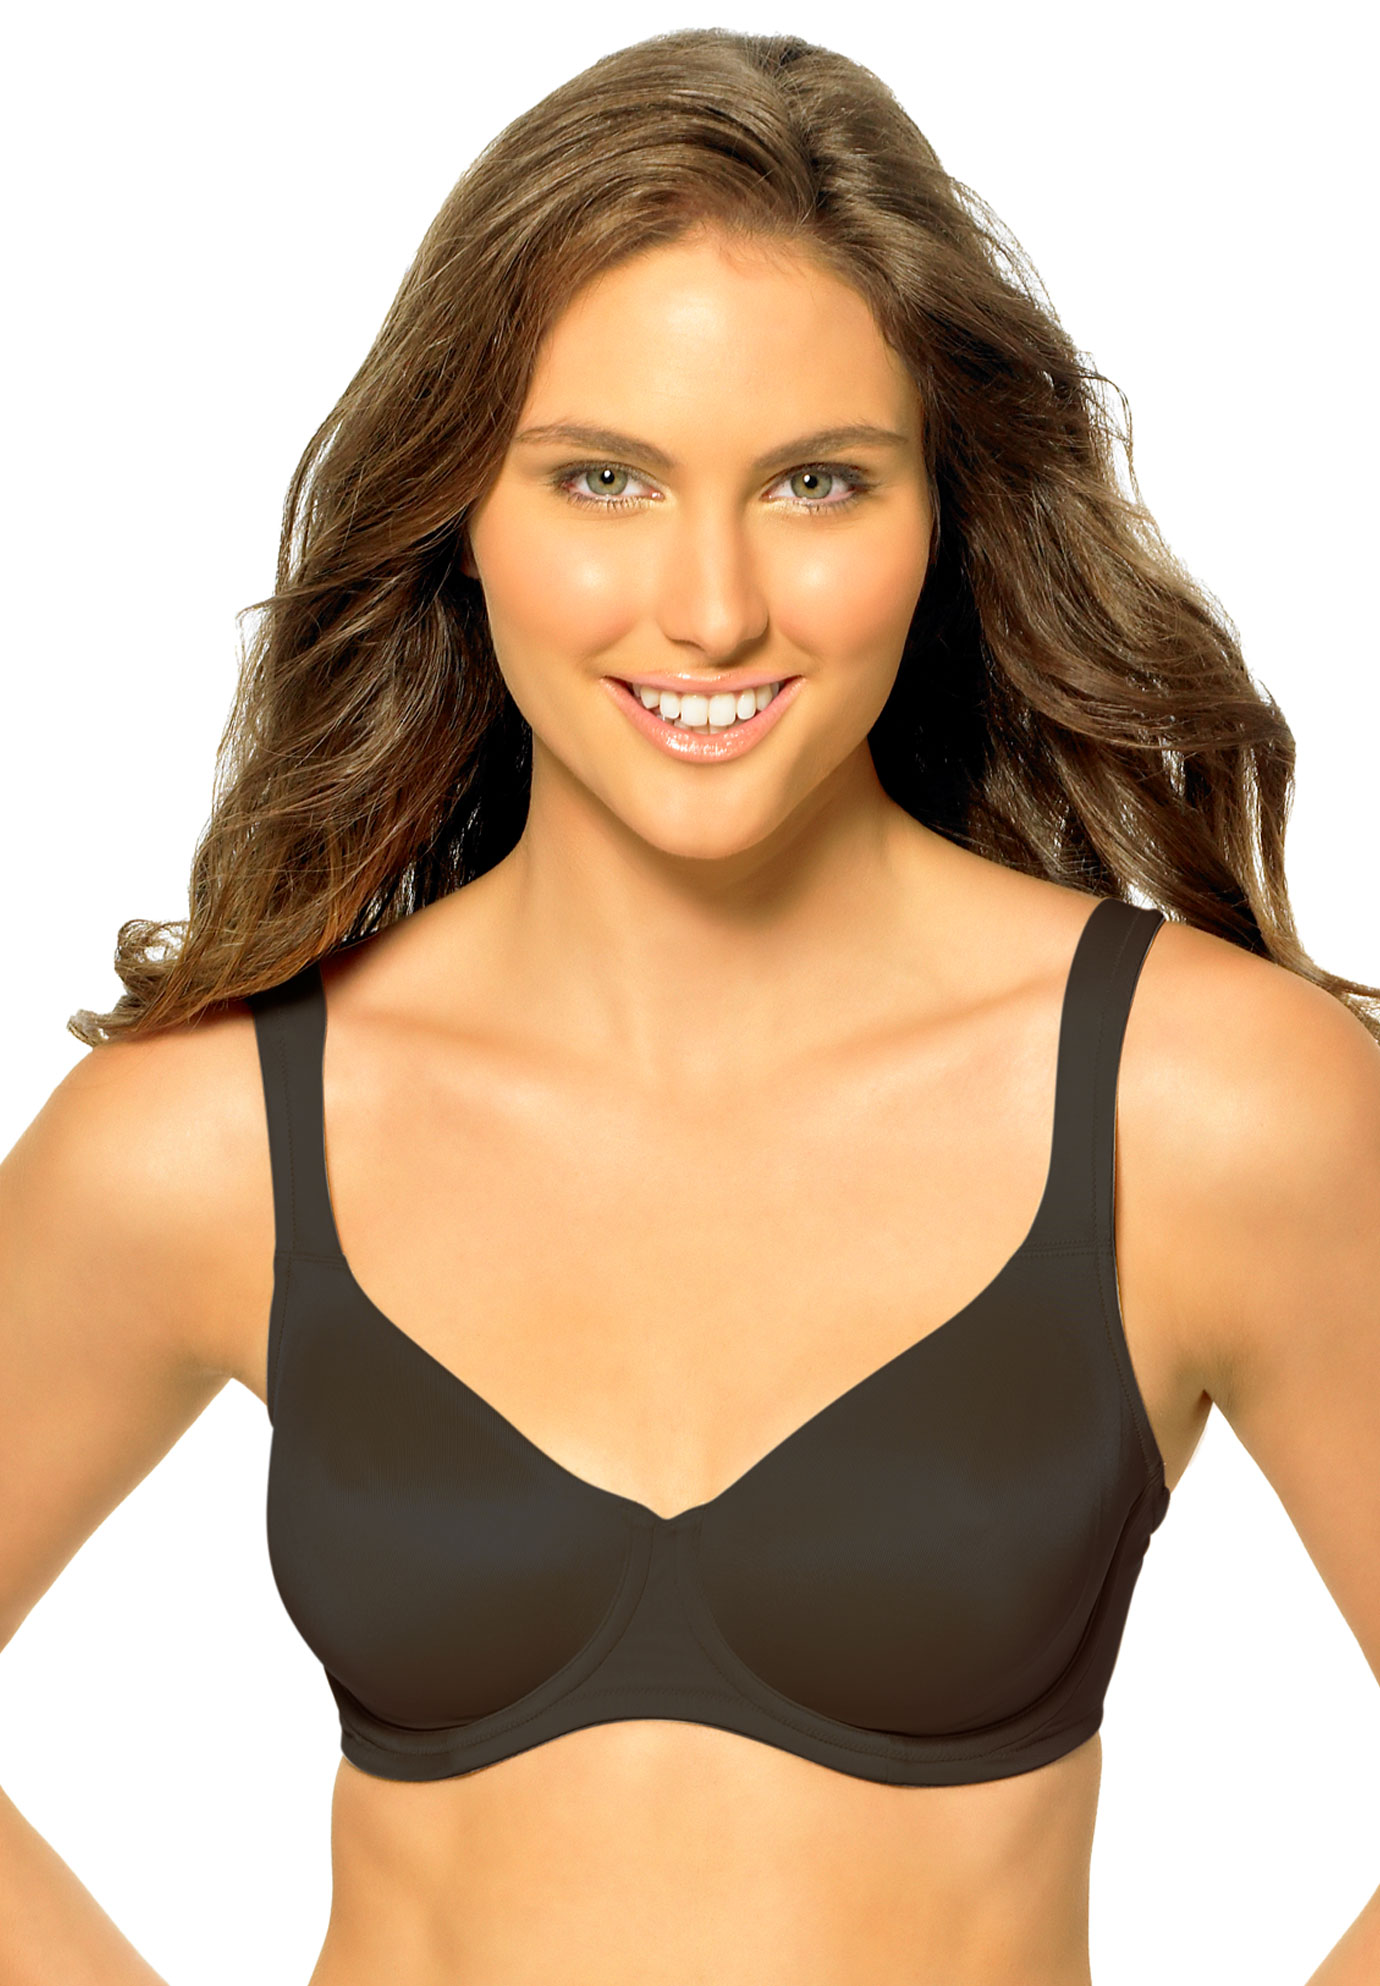 Dominique ™ Underwire Silky Support Bra,